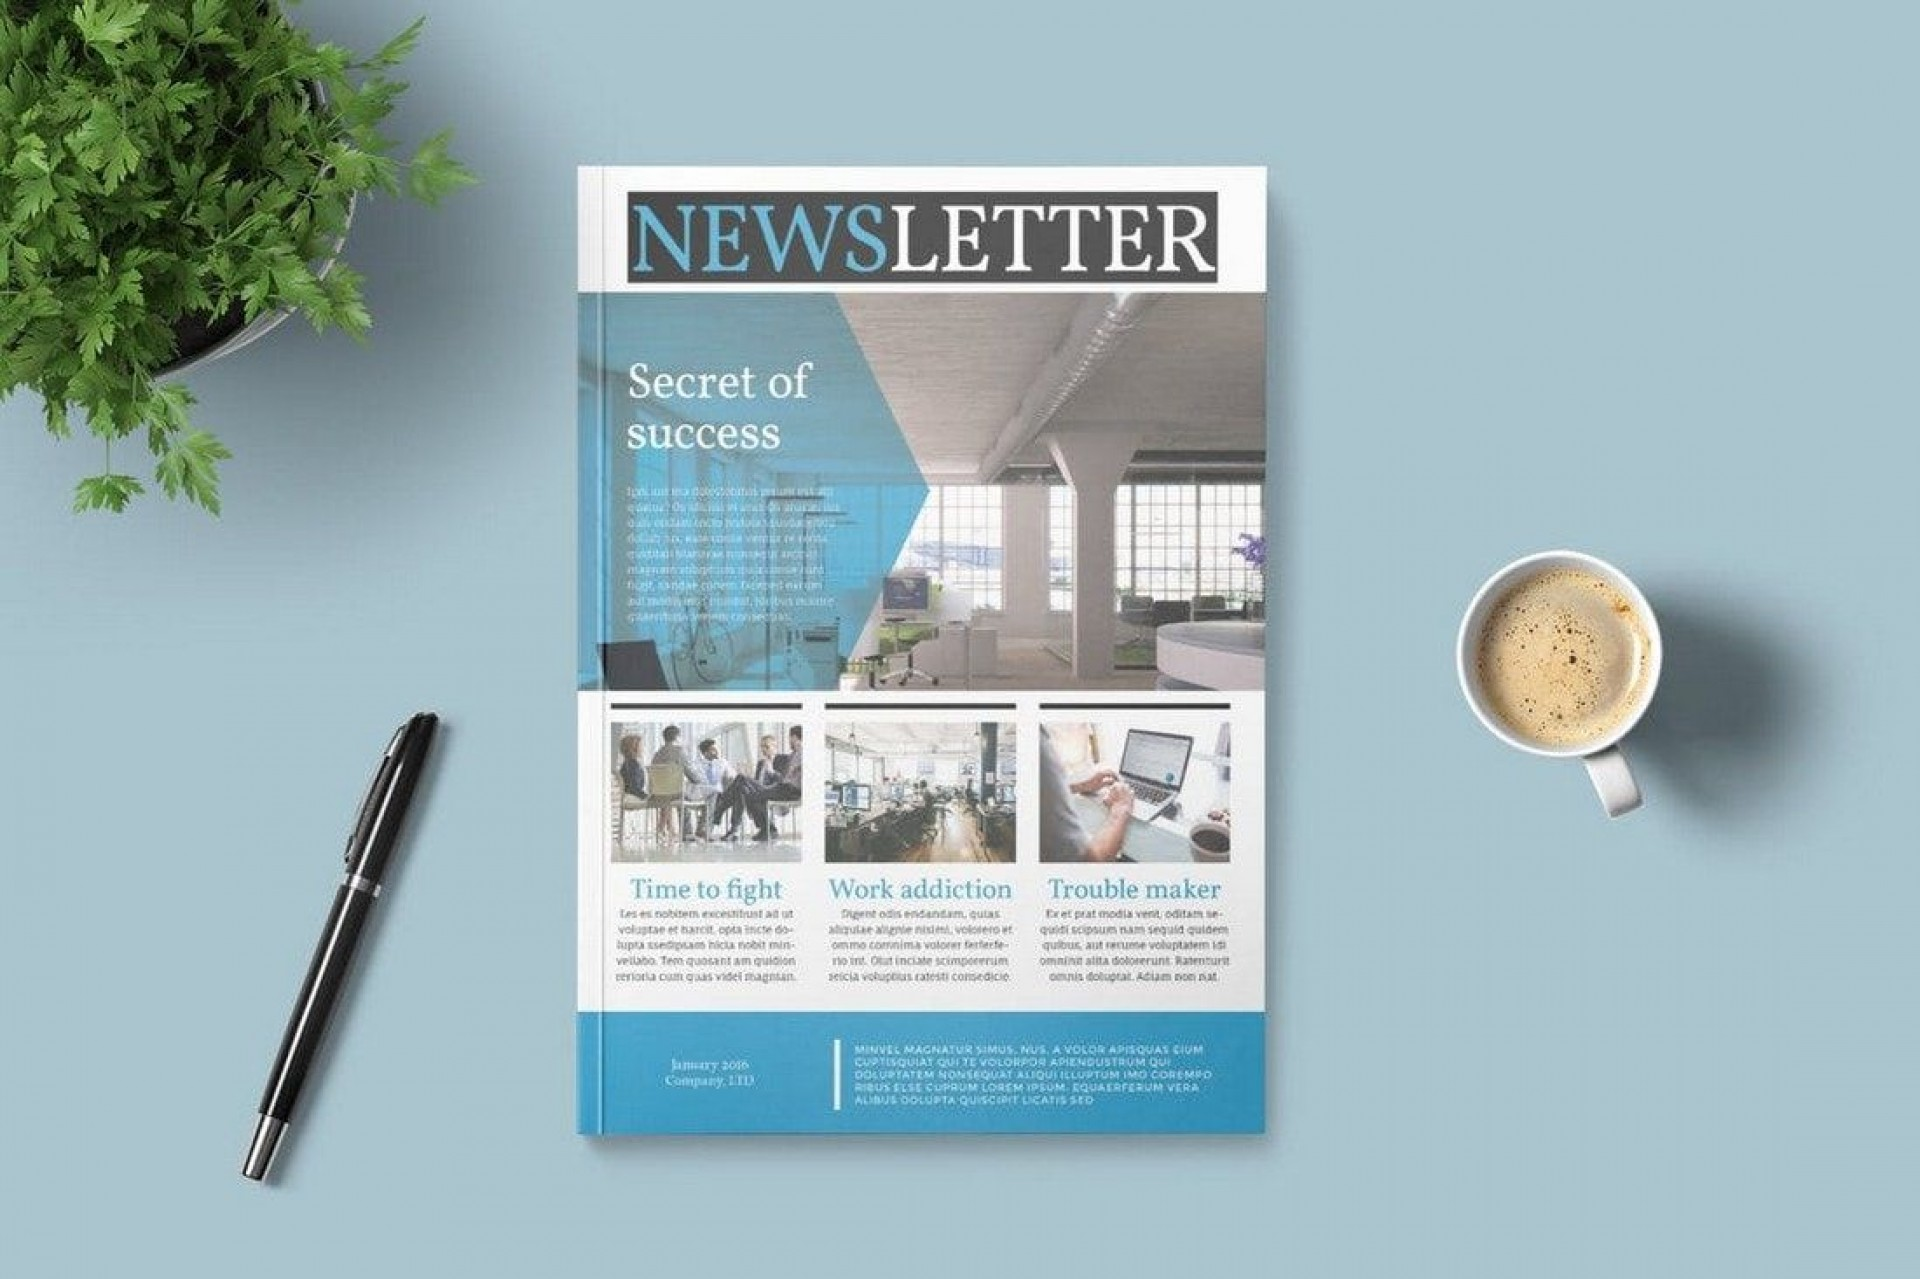 005 Top Indesign Newsletter Template Free Design  Cs6 Email Adobe Download1920